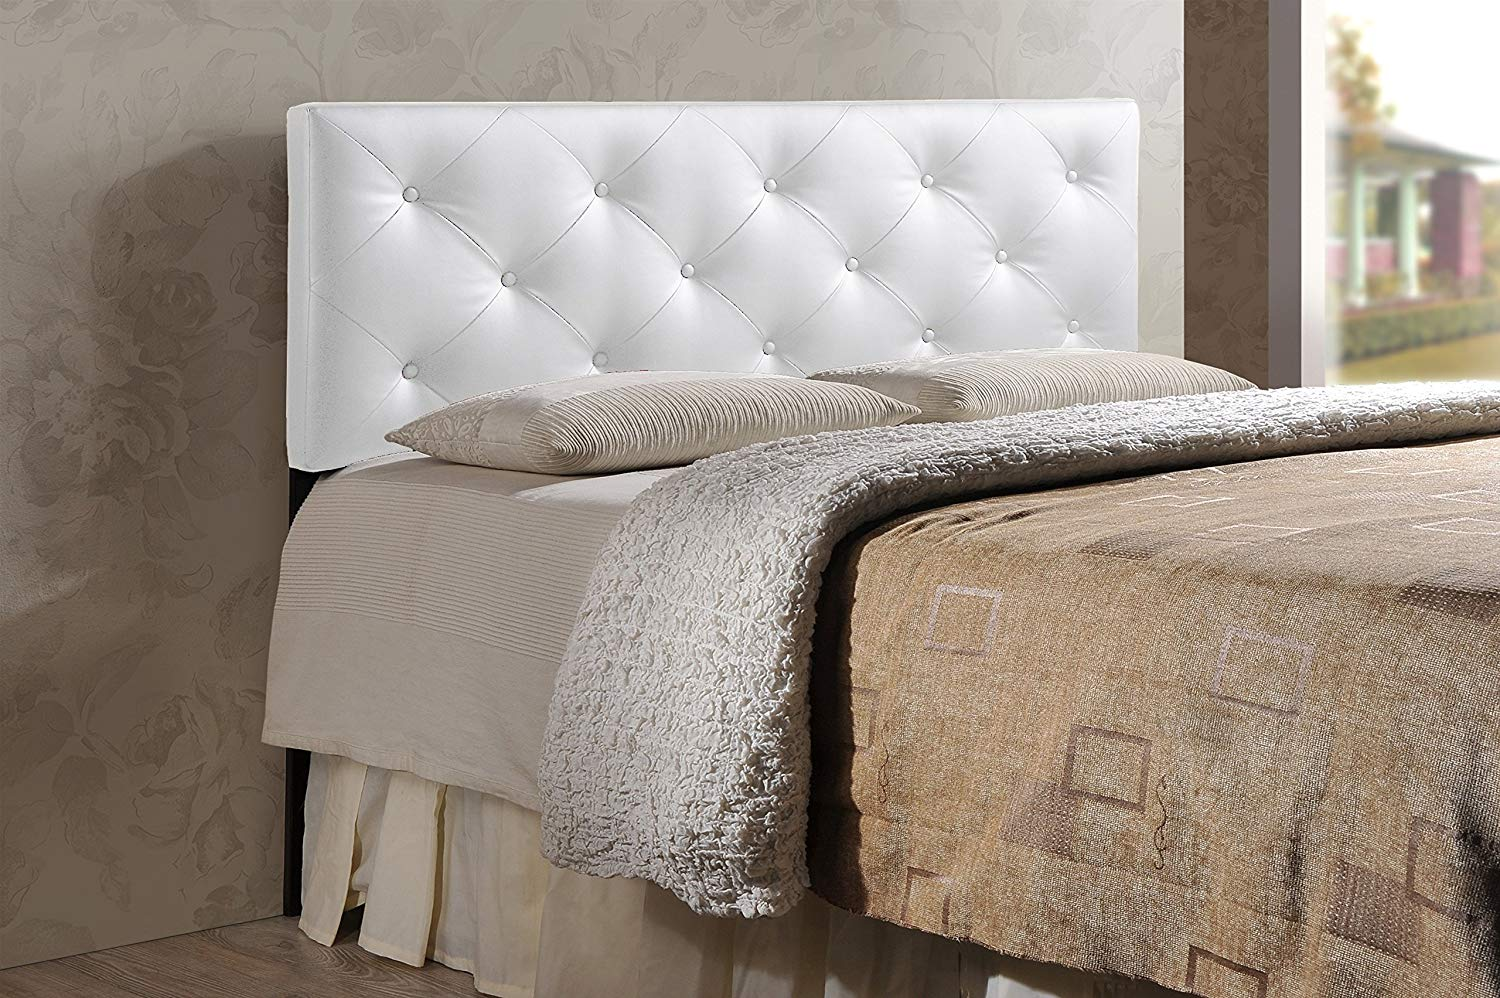 Traveller Location - Baxton Studio Wholesale Interiors Baltimore Modern and  Contemporary Faux Leather Upholstered Headboard, King, White -